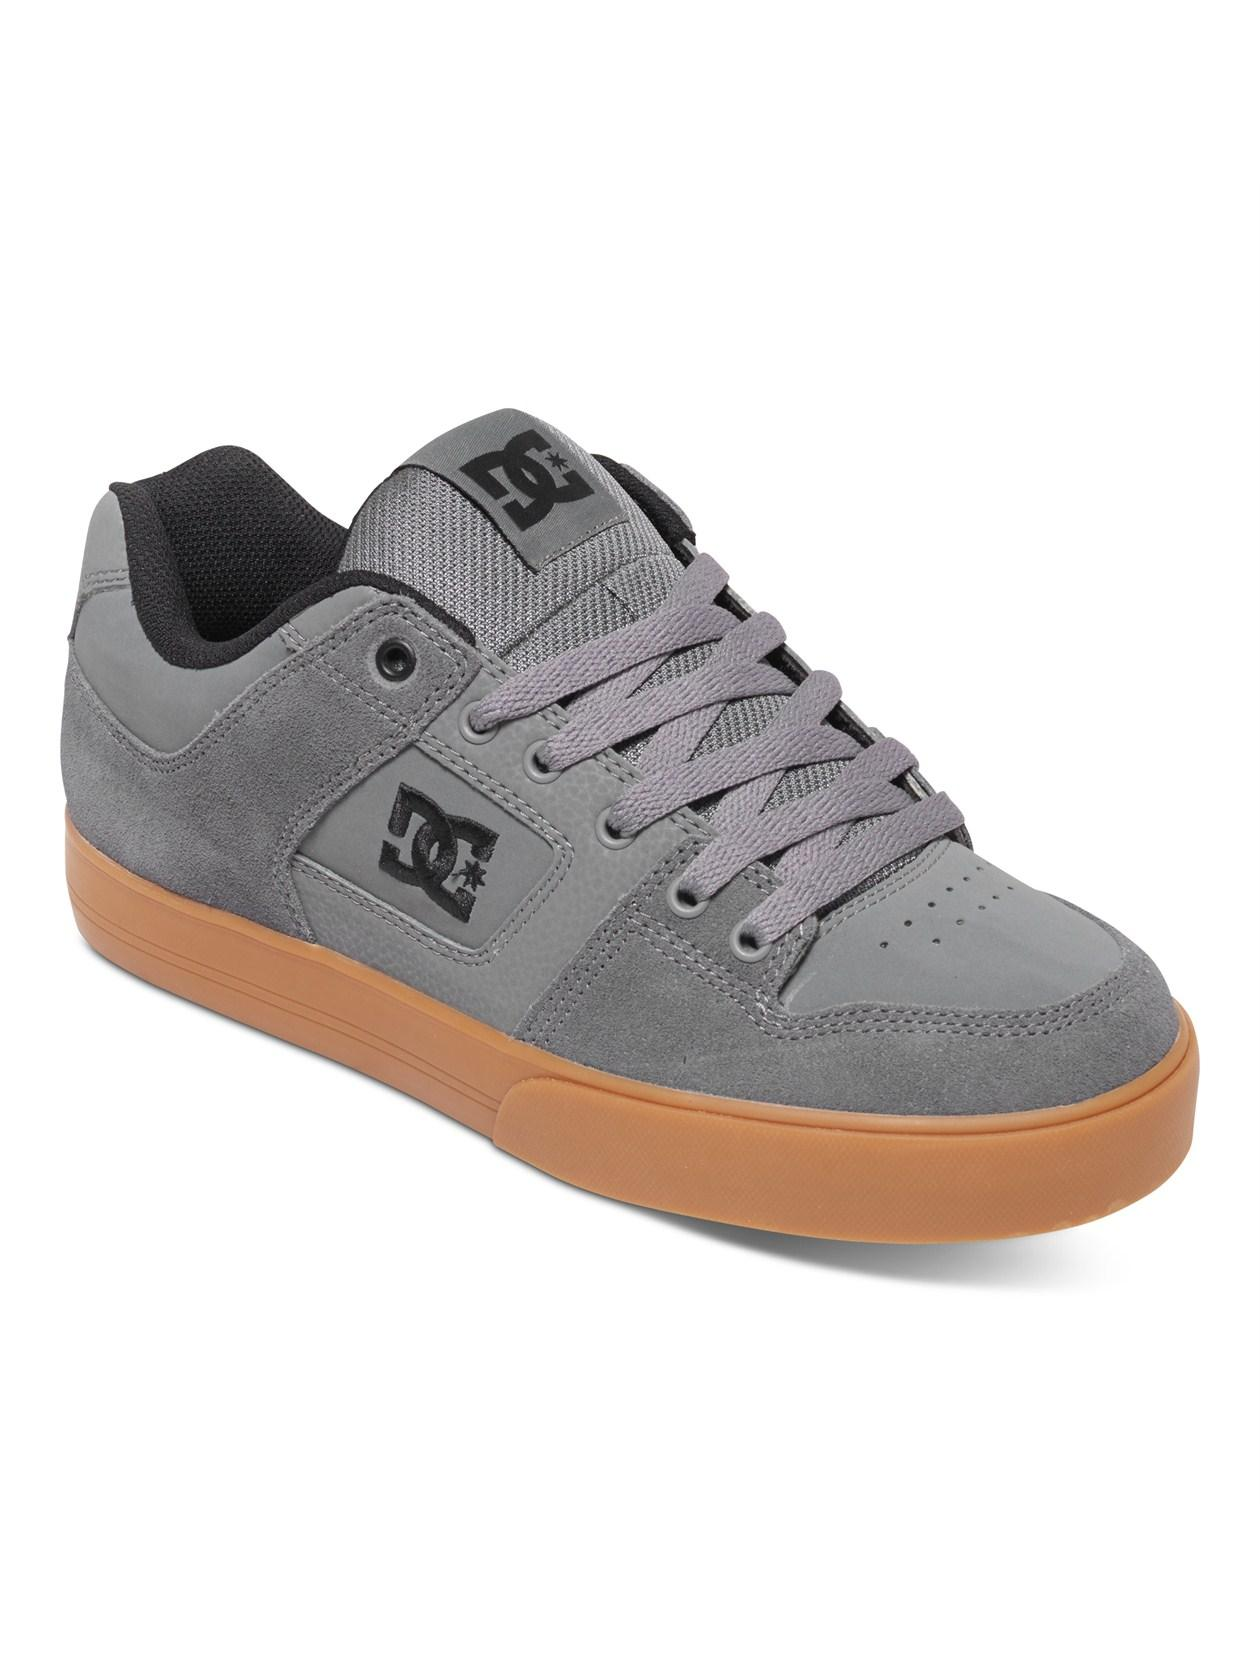 DC Shoes Court Graffik Skate Shoe Bring your skateboarding dreams to life with these DC Shoes Court Graffik skate shoes. This style features a leather upper with a .